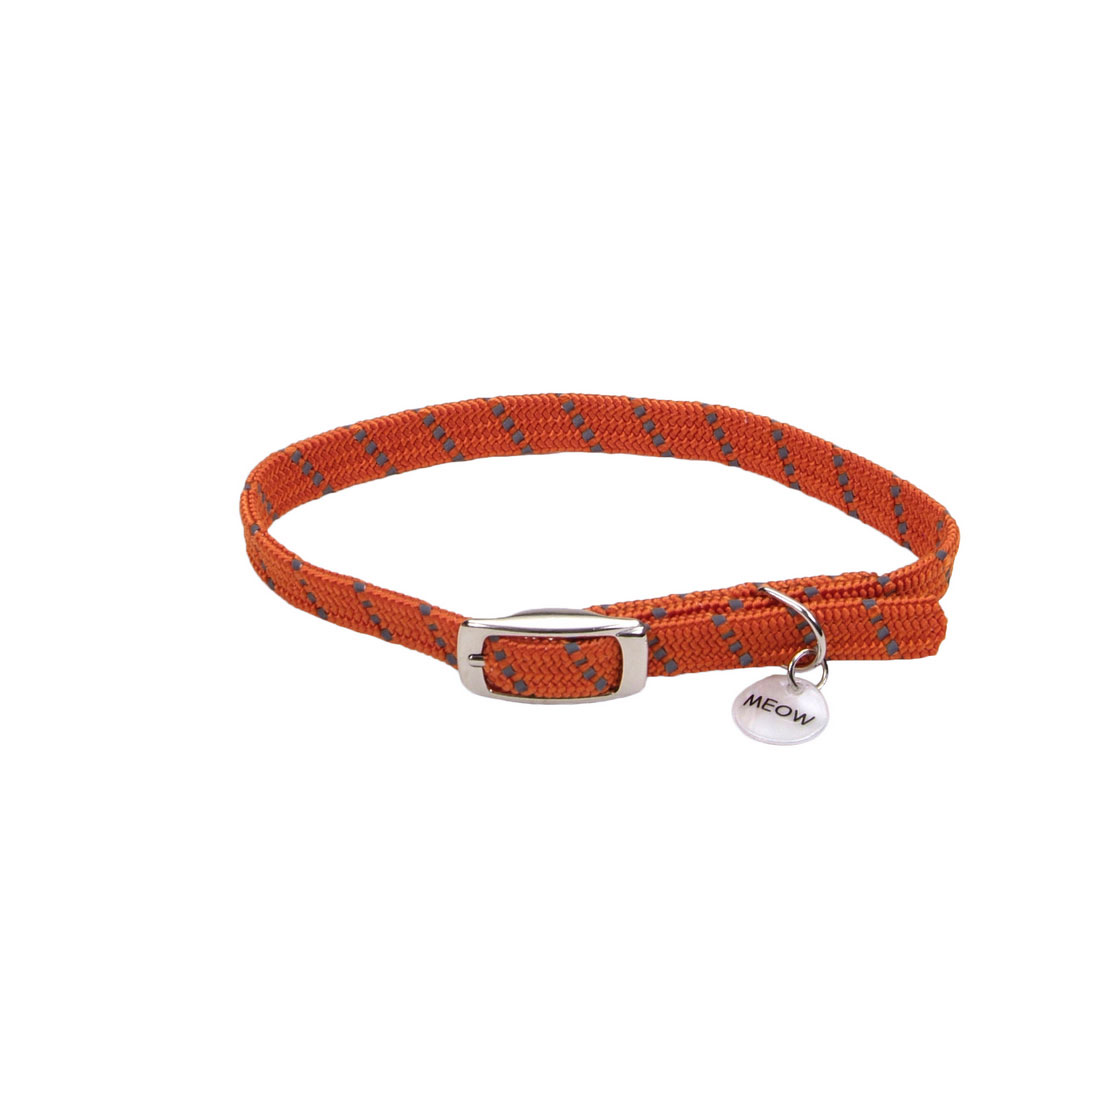 ElastaCat Reflective Safety Stretch Collar with Reflective Charm for Cats, Orange, 10-in